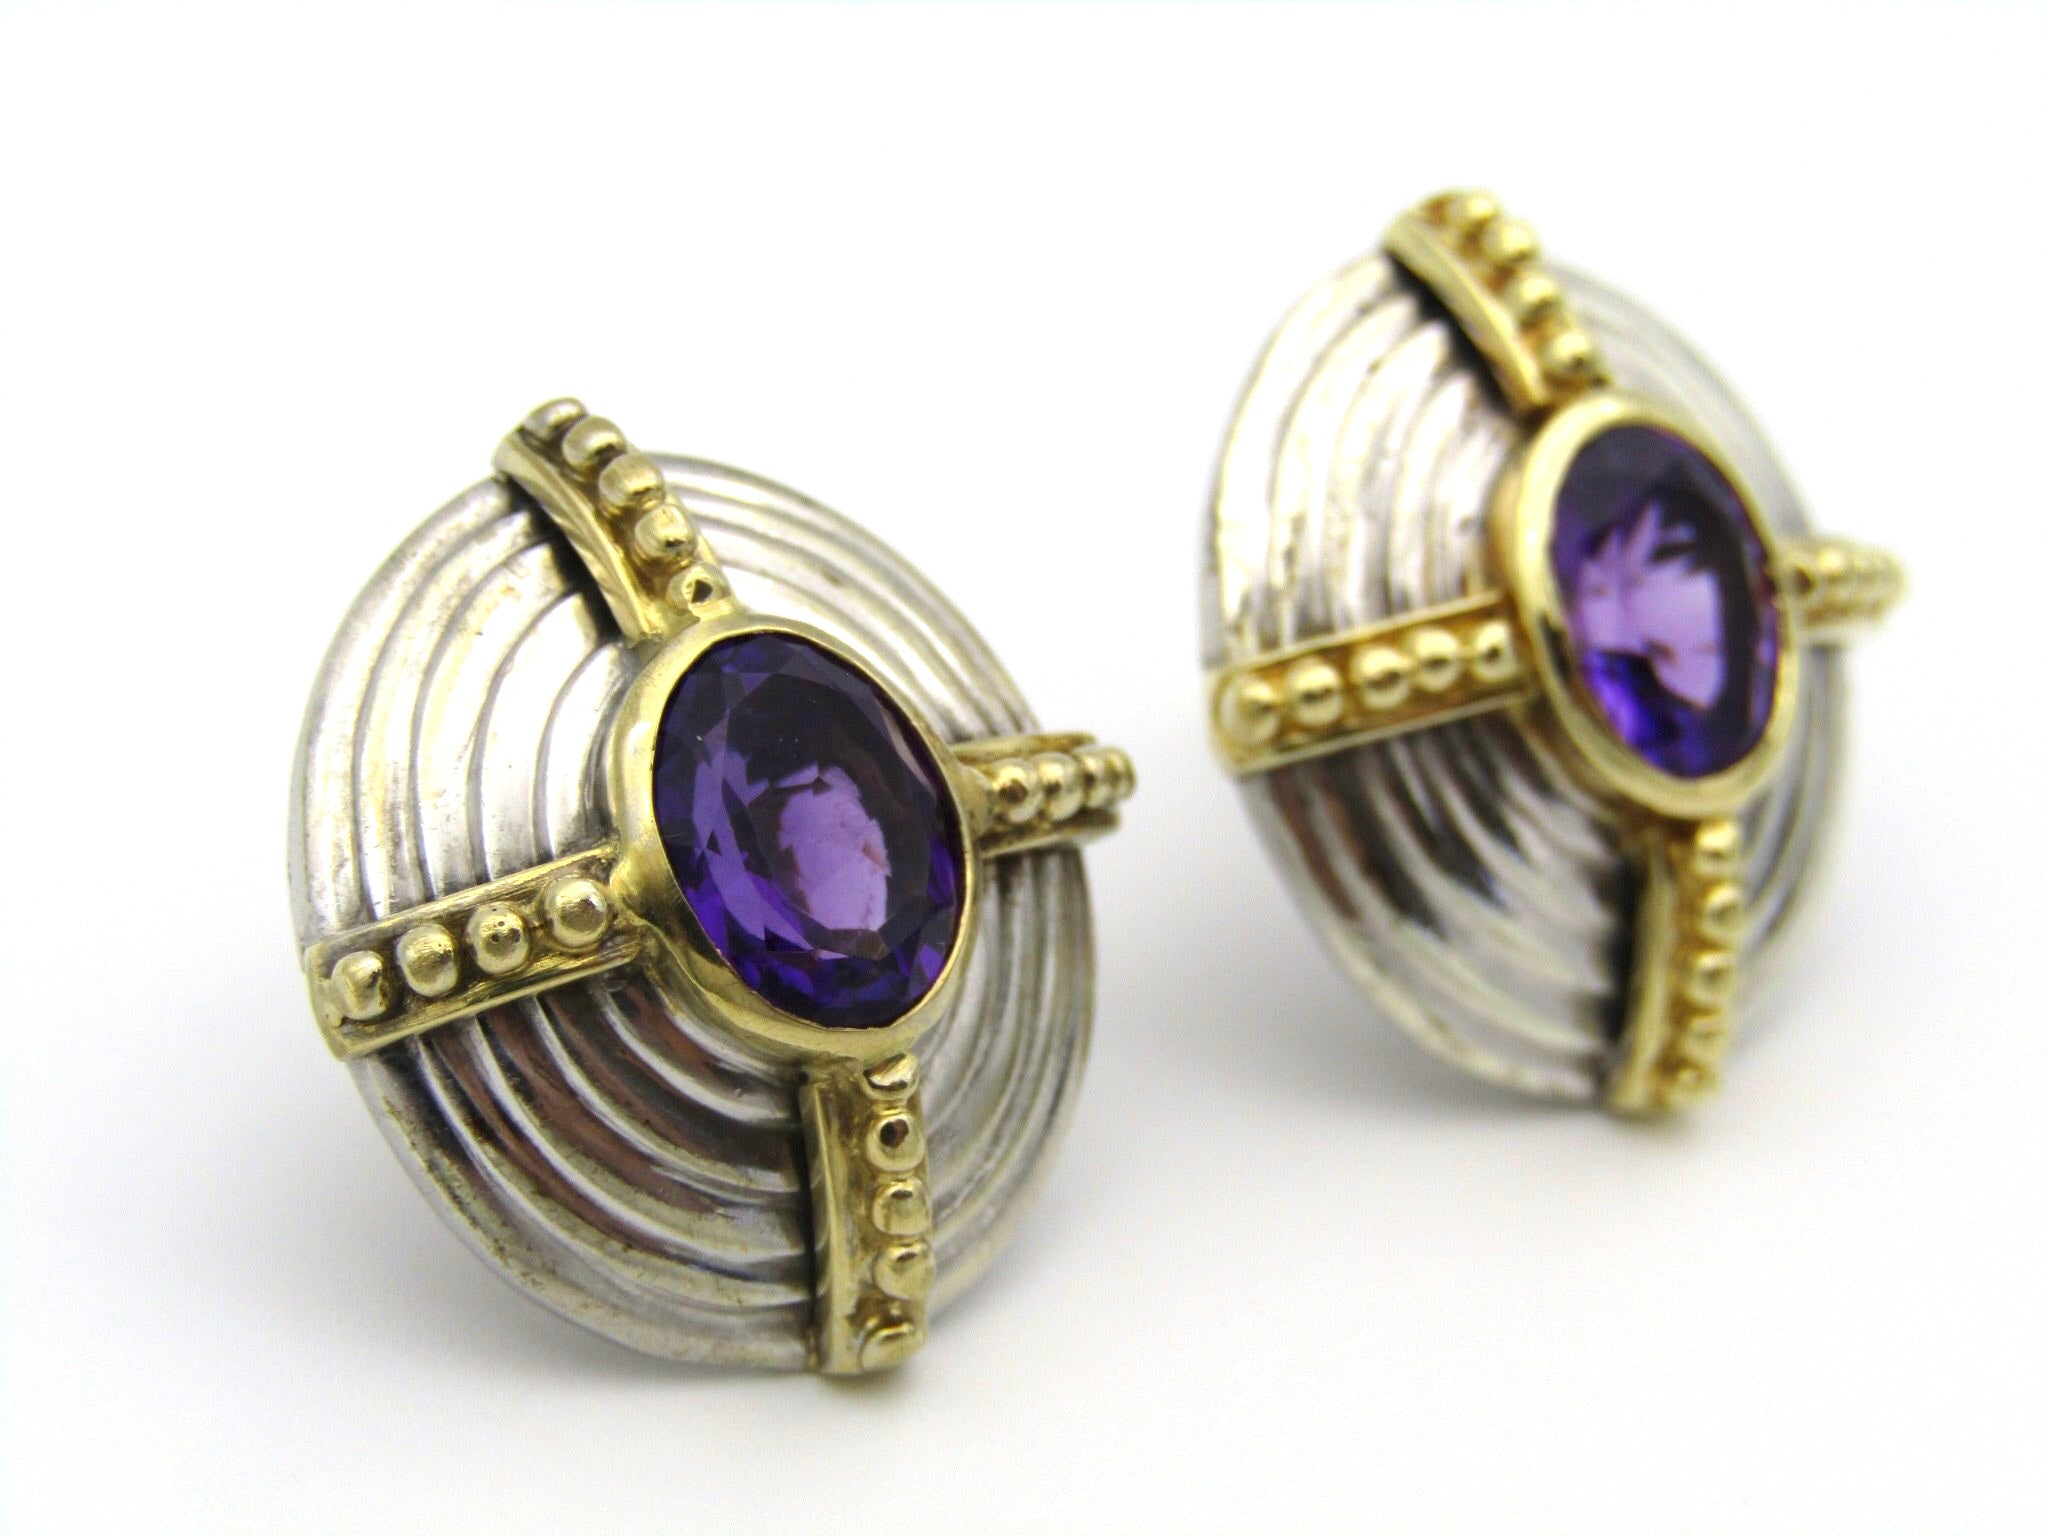 A pair of 18kt and 9kt gold amethyst earrings.